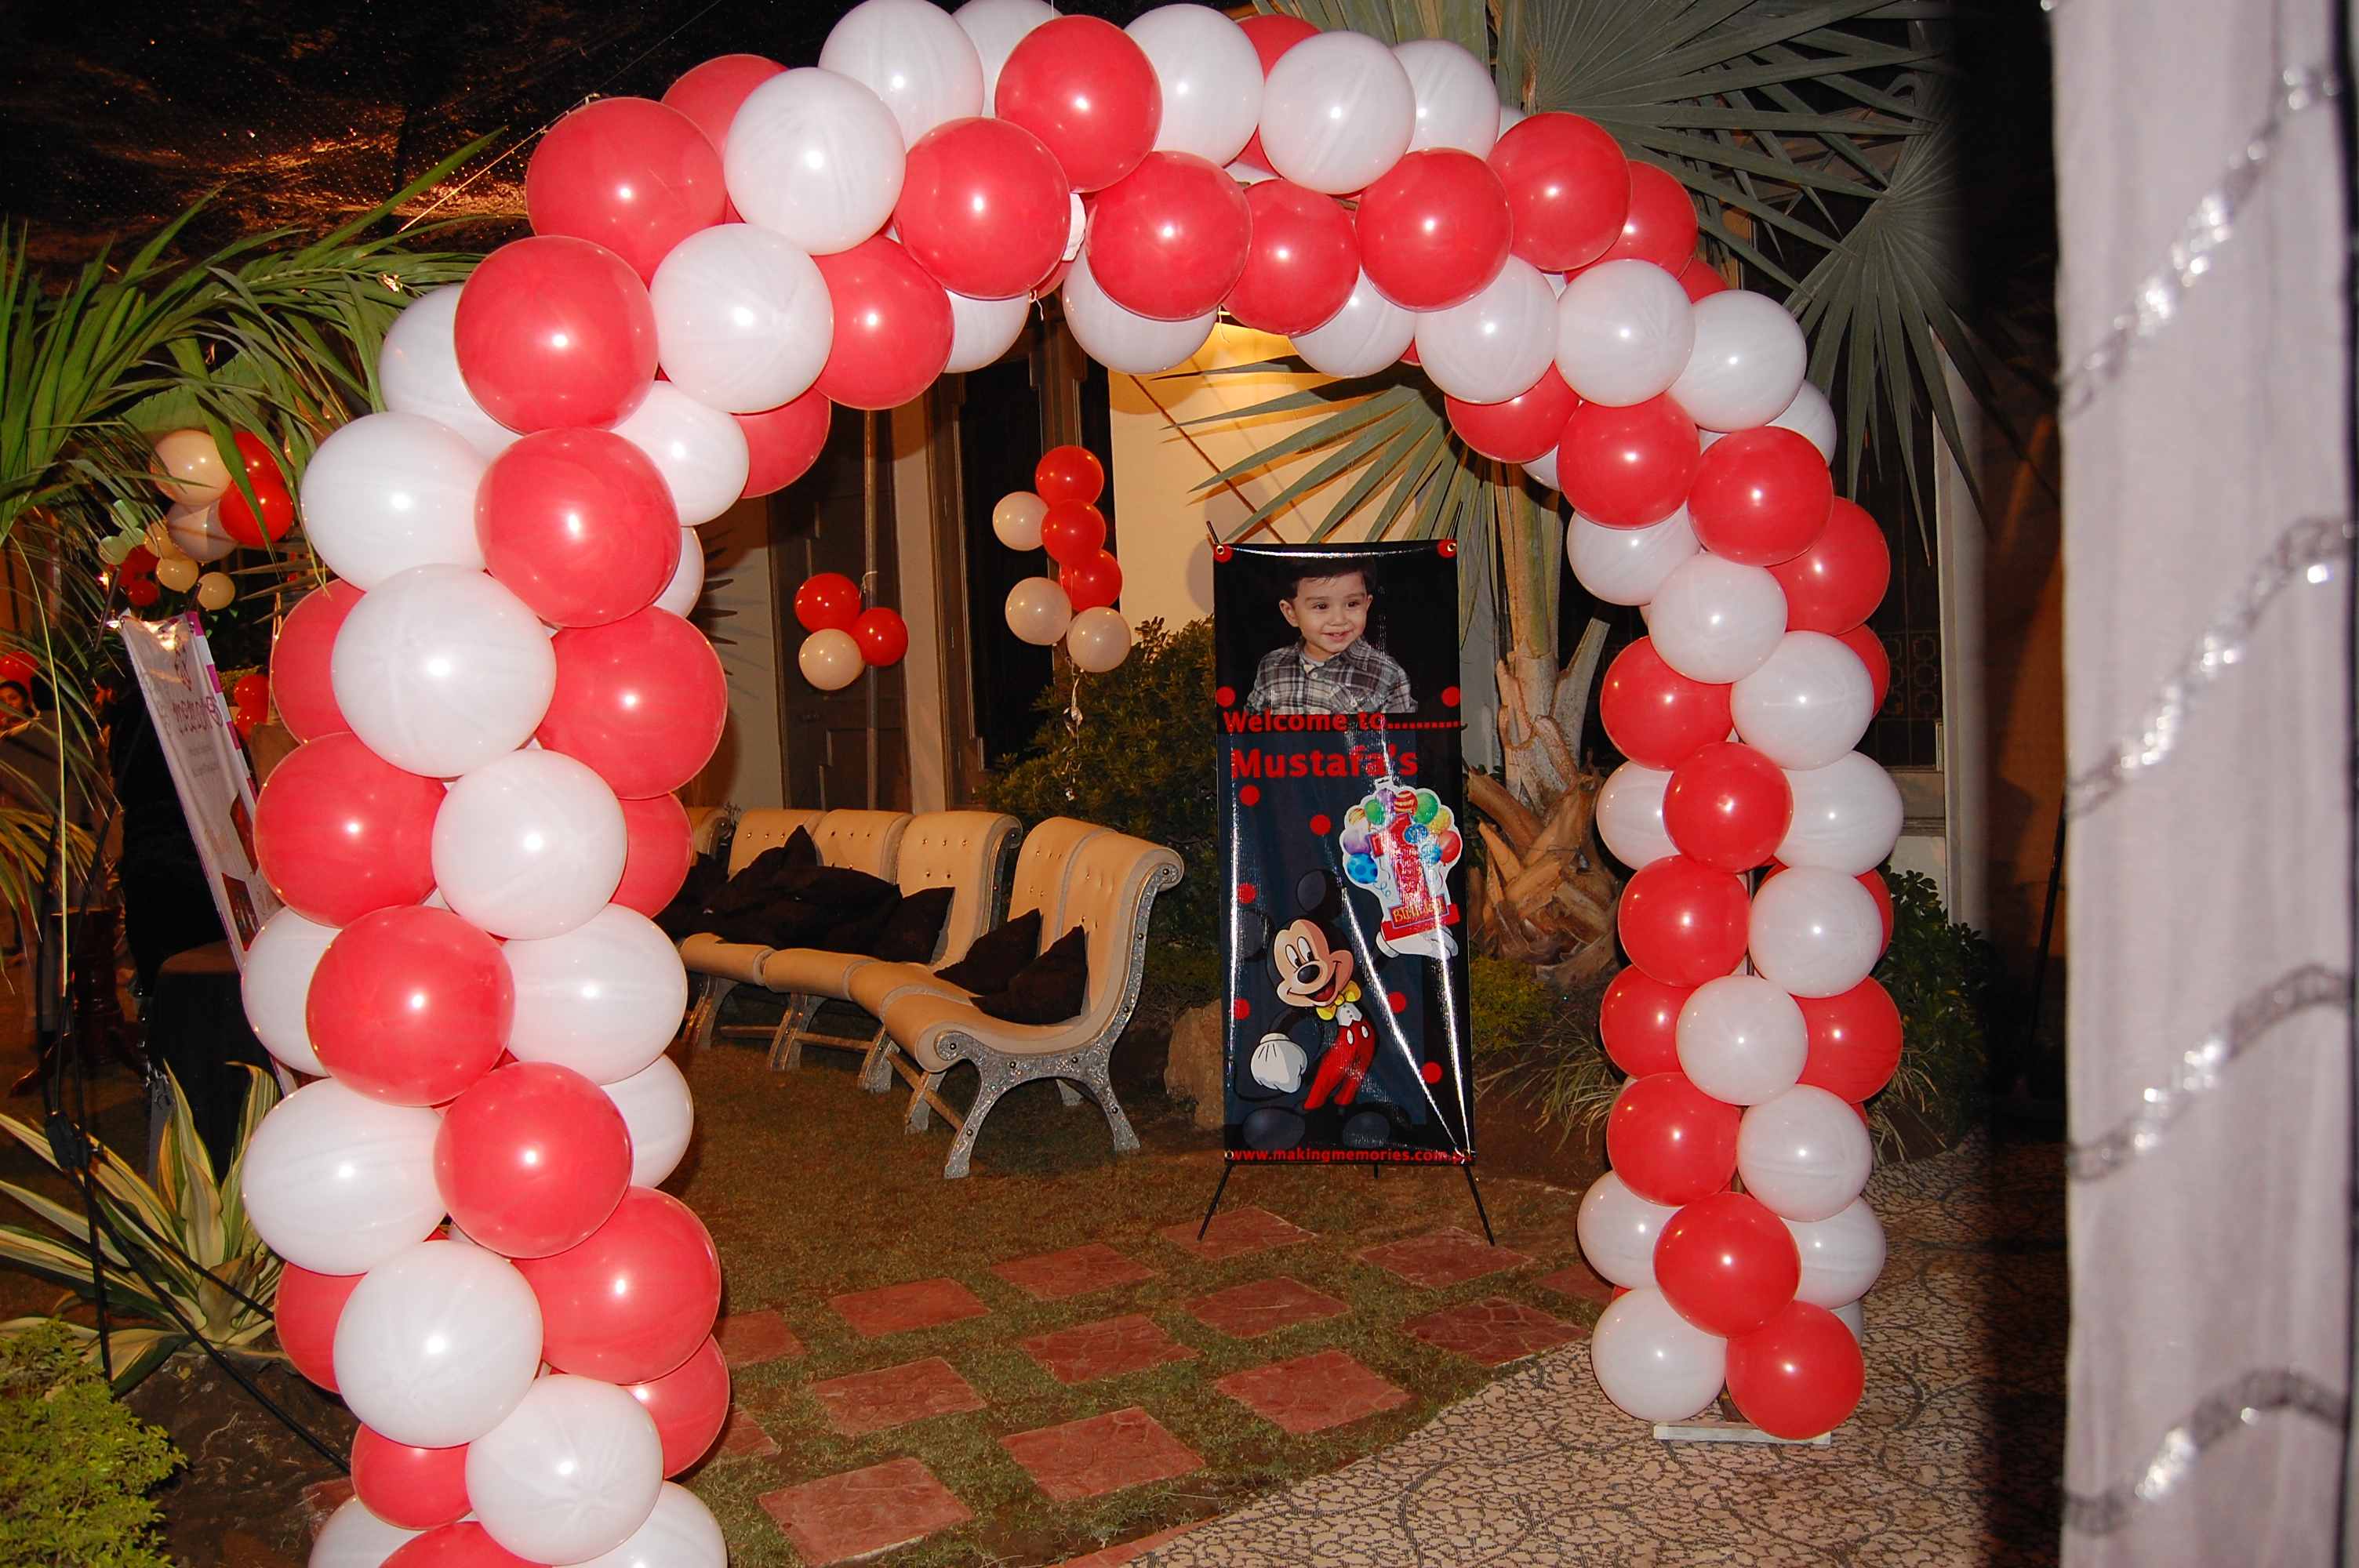 Red and White Balloon Arches